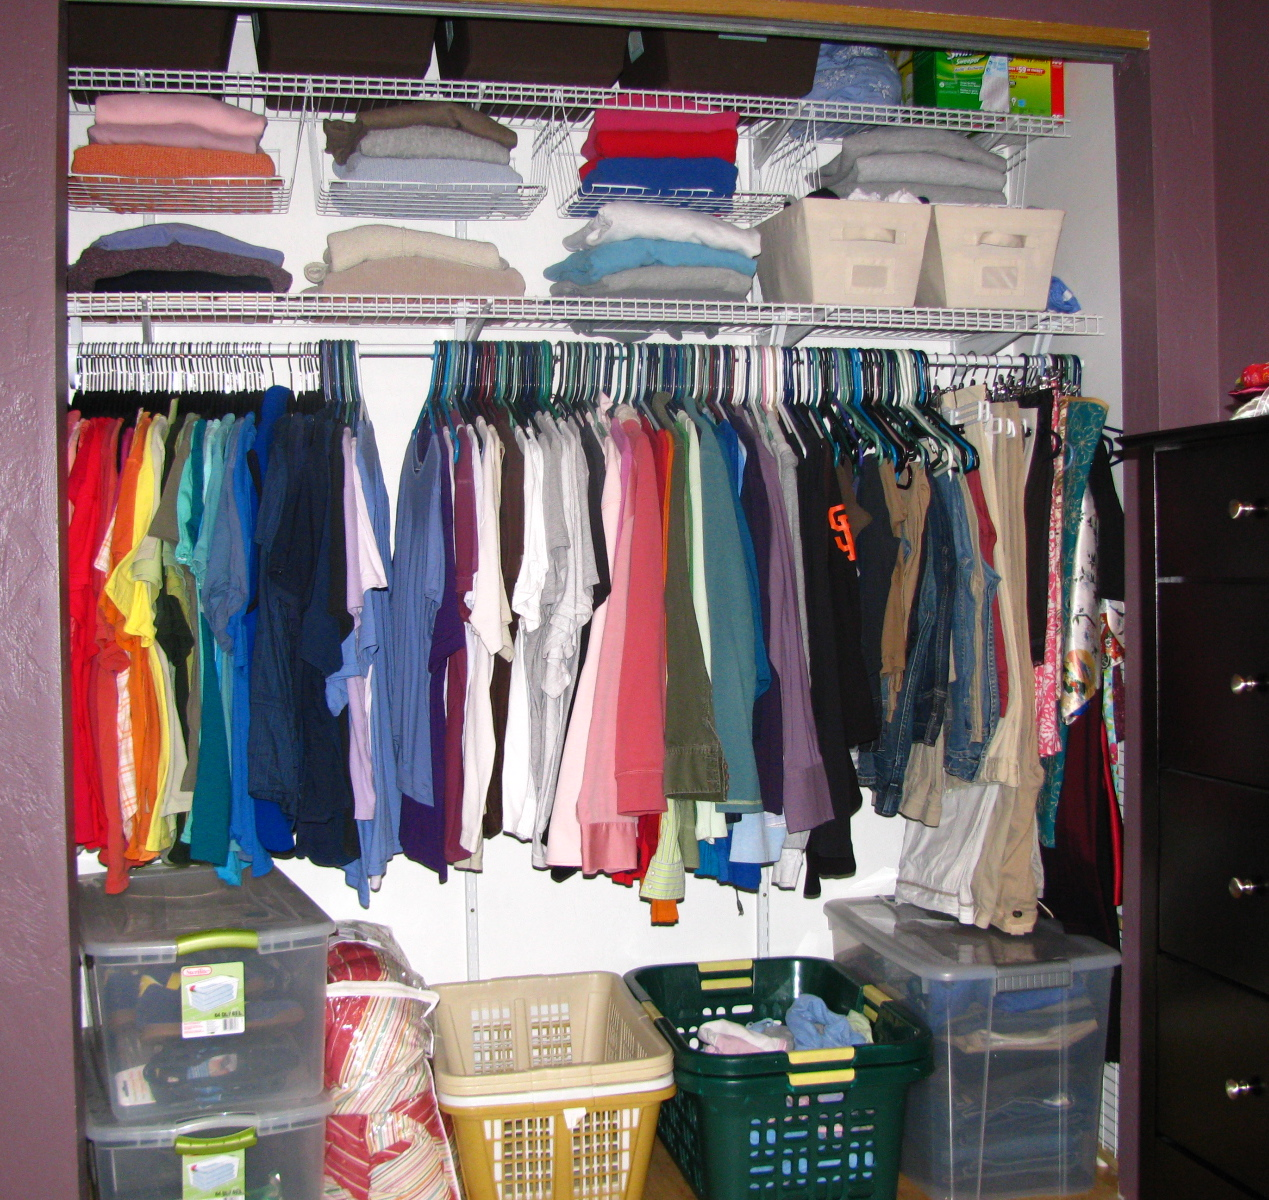 How to organize a closet the 5 simple steps i use every for Organizing ideas for closets